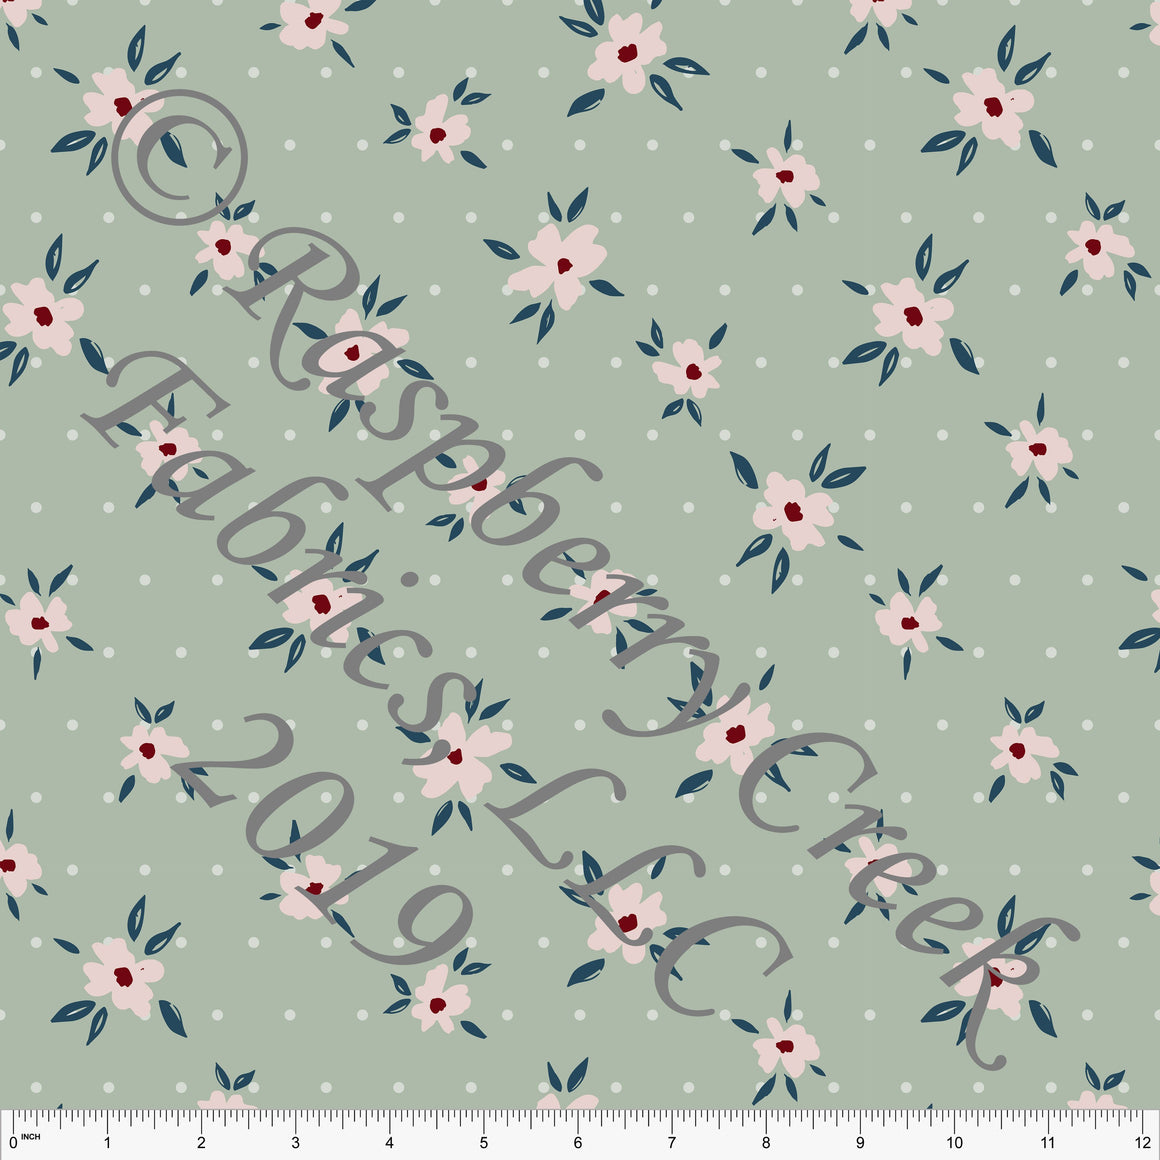 Sage Blush and Denim Blue Fleur Dot Floral By Kimberly Henrie for CLUB Fabrics